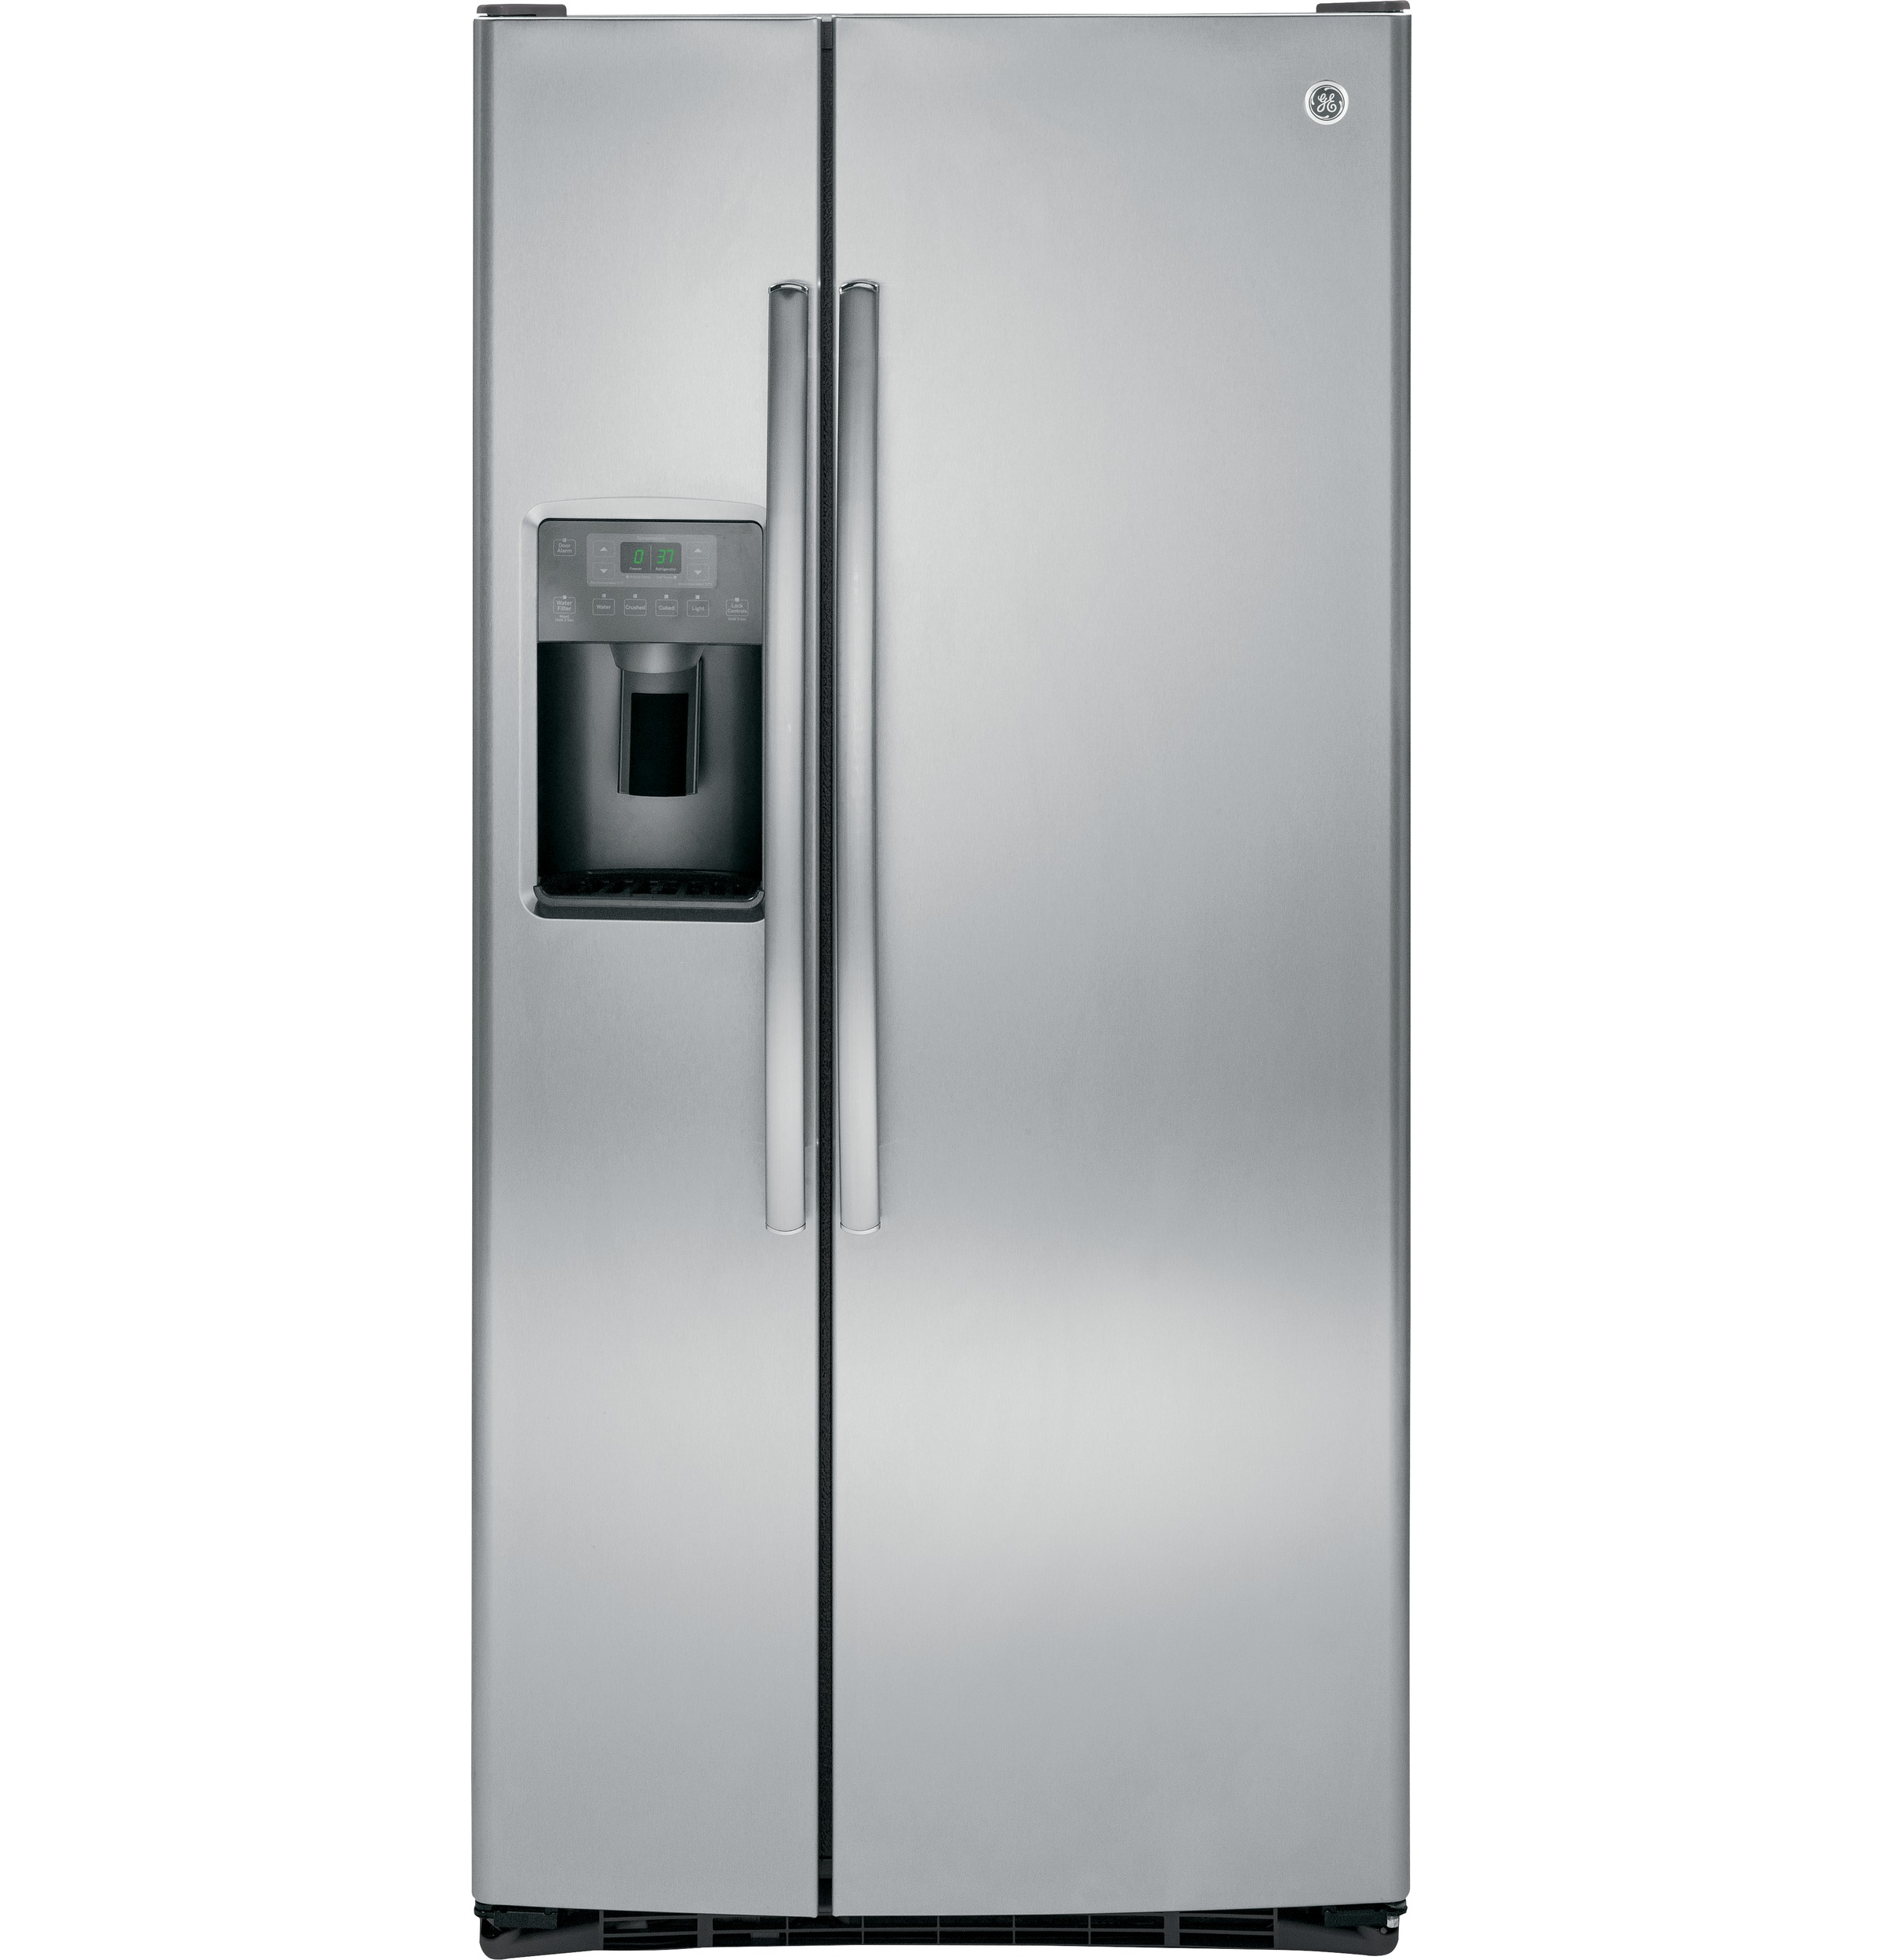 Ge 232 cu ft side by side refrigerator gss23gskss ge appliances product image publicscrutiny Gallery